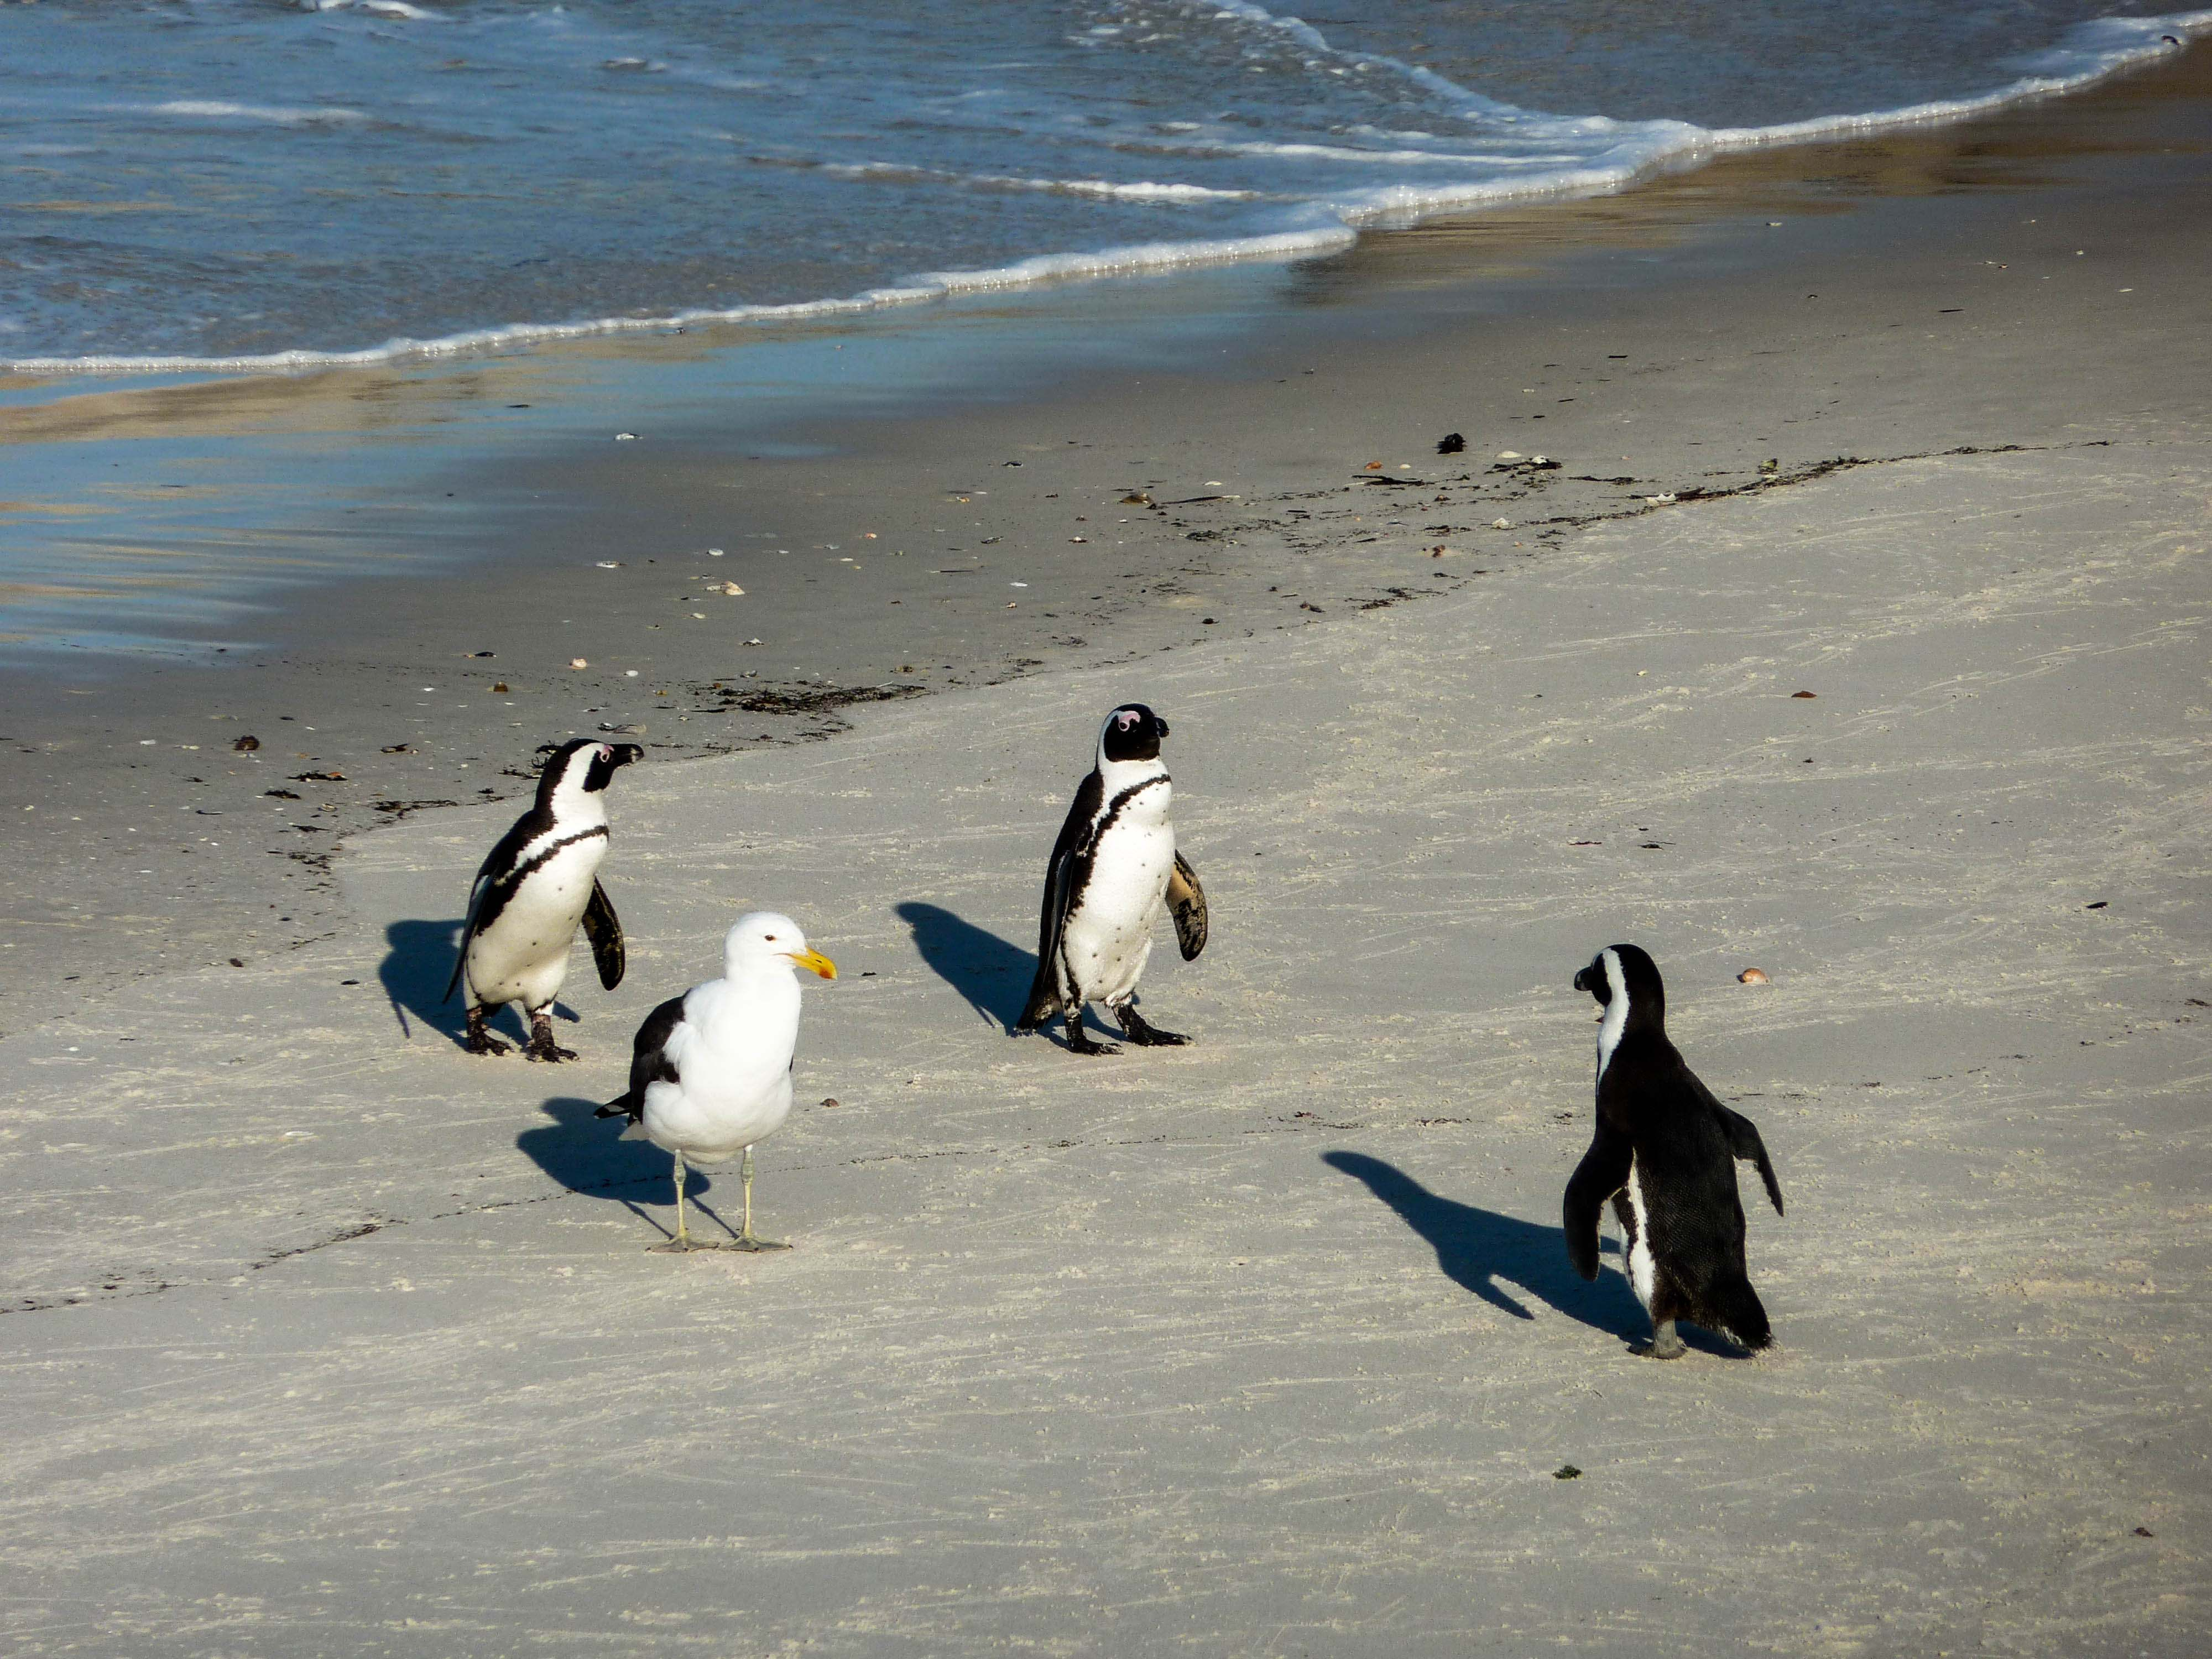 <p>Three African penguins eye an interloping seagull with seeming suspicion. Will they get along?</p>